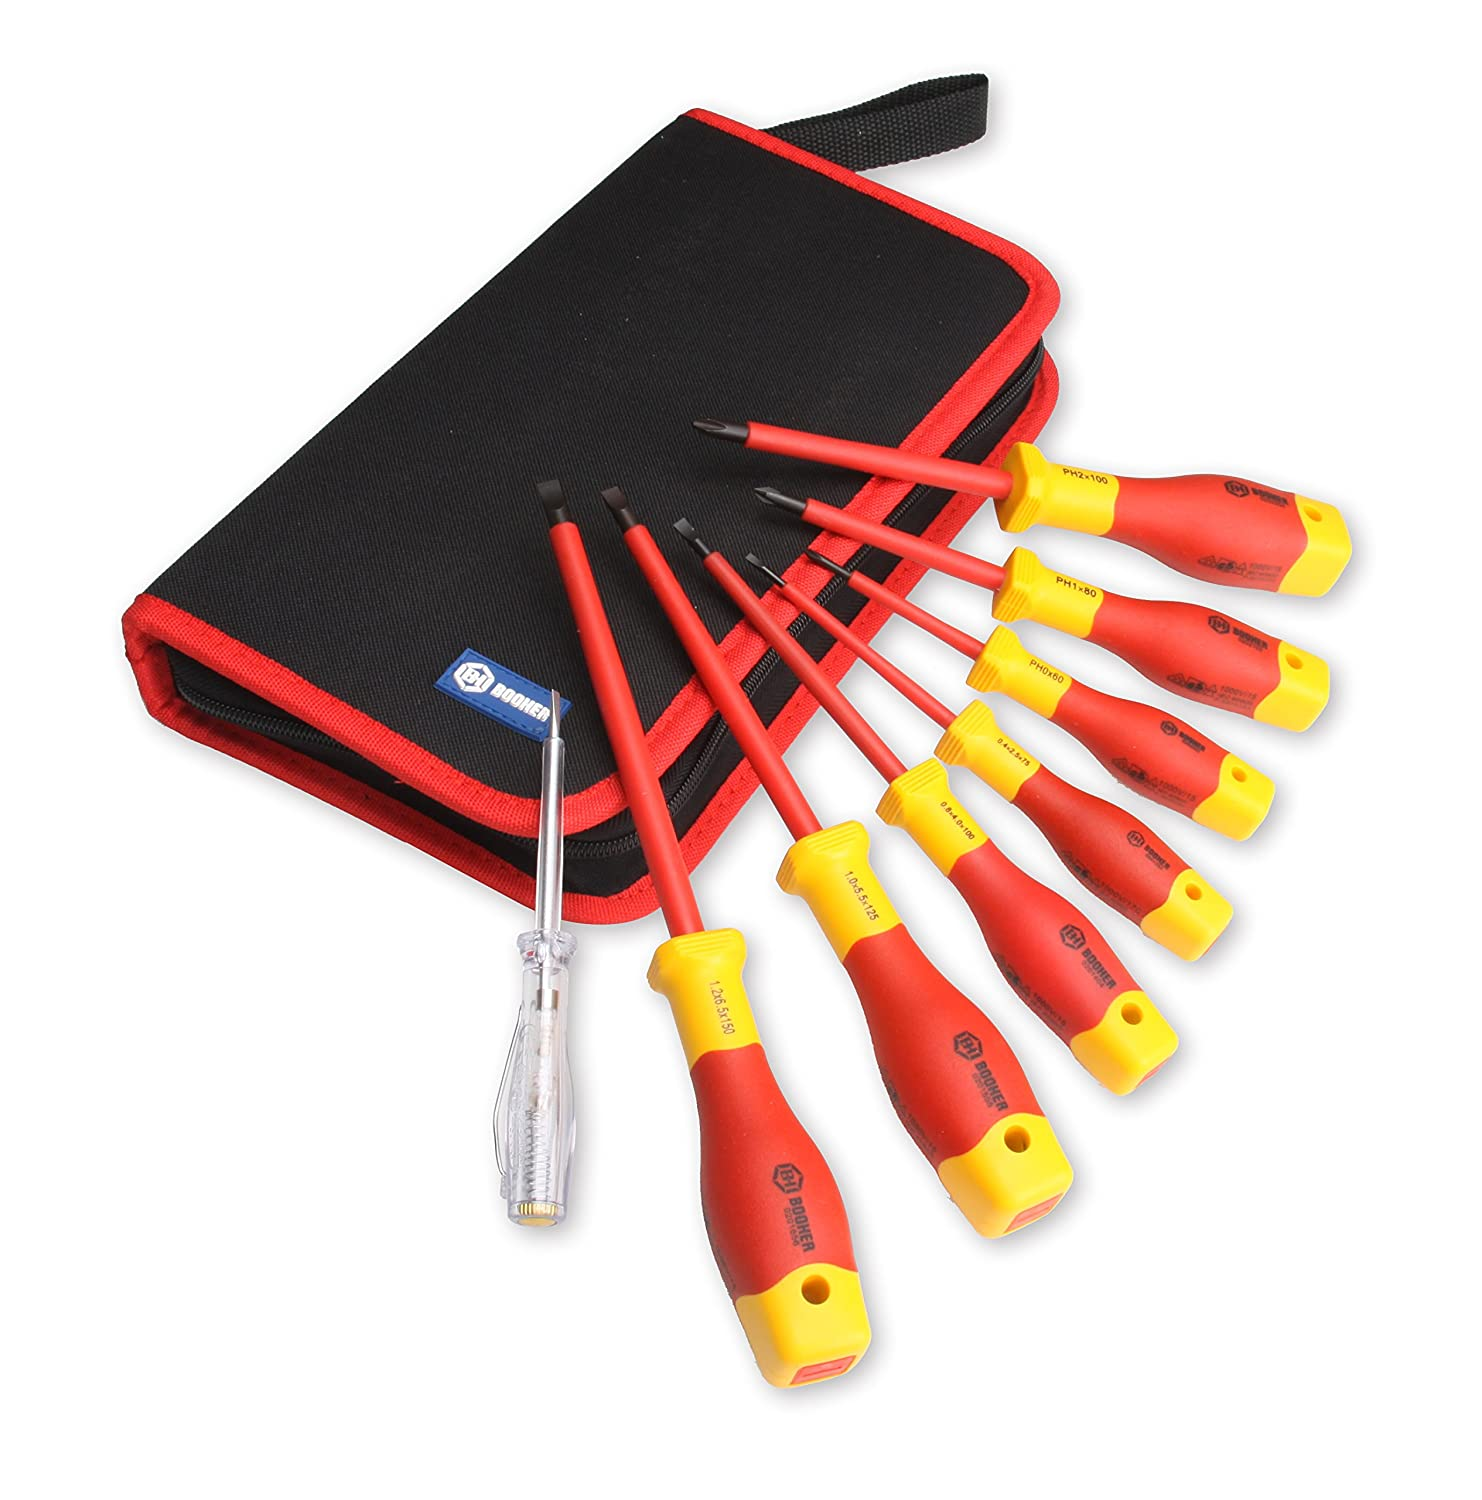 BOOHER 0200204 8-Piece 1000V VDE Insulated Screwdriver Set Booher Industrial Tools(Shanghai)Co. Ltd